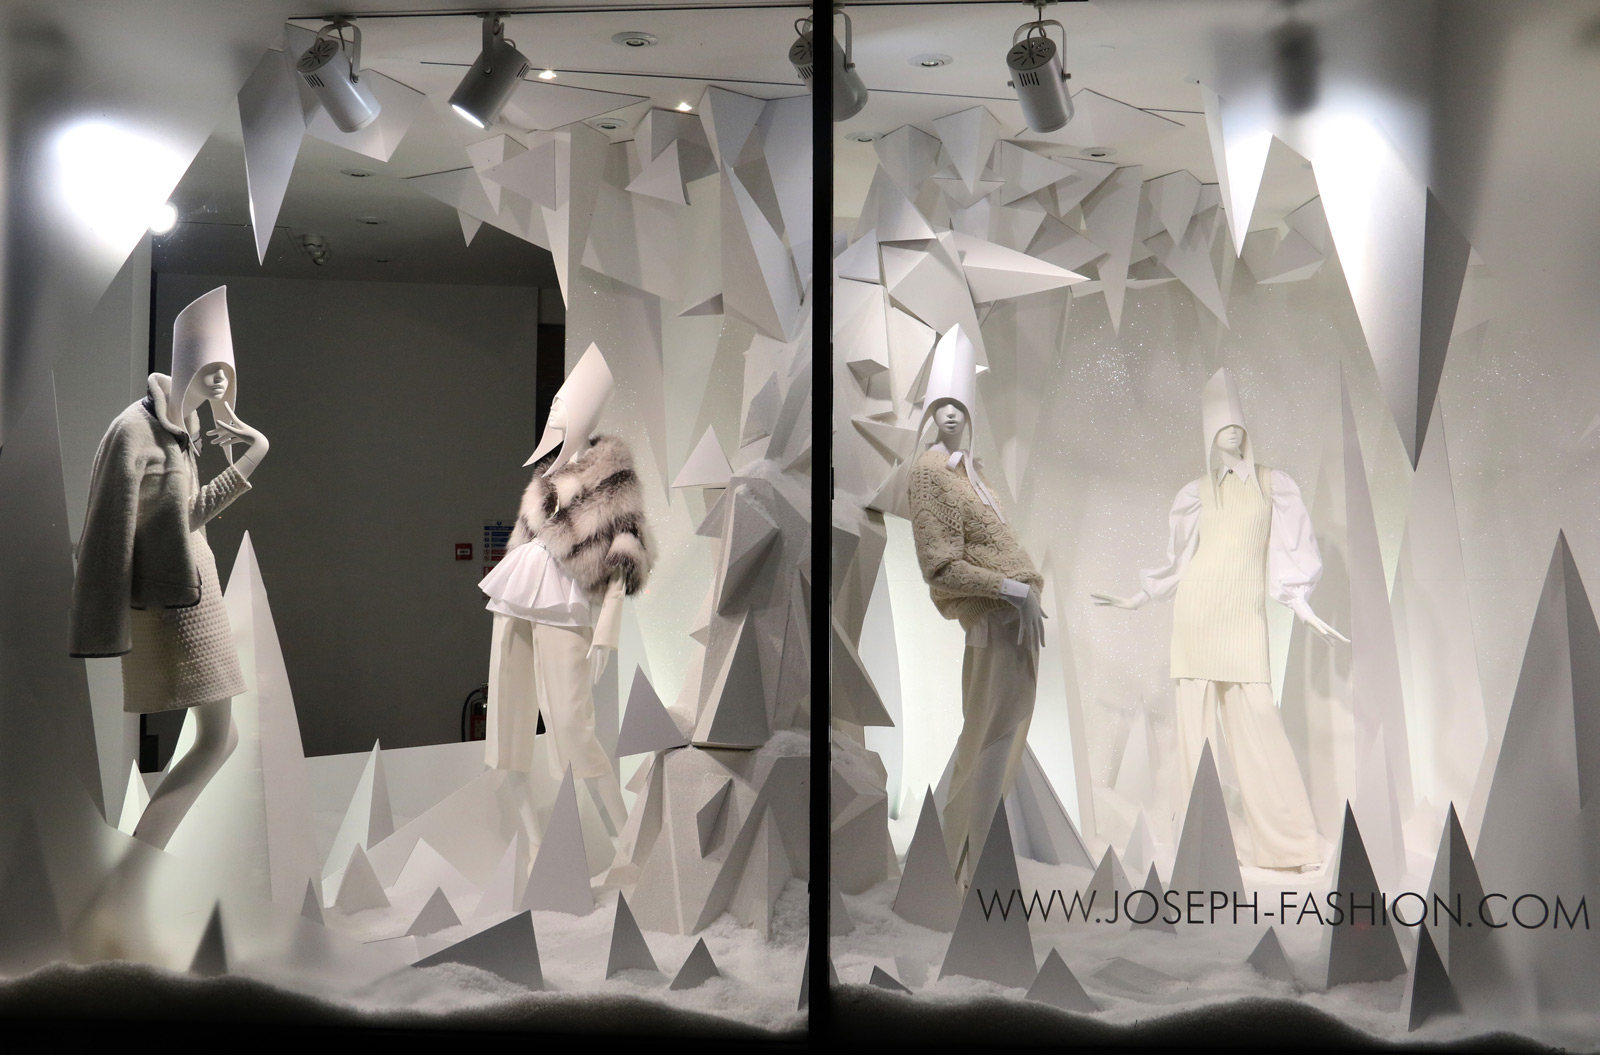 In this winter window display we see geometric figures, all arranged in a minimalistic way but also sophisticated.